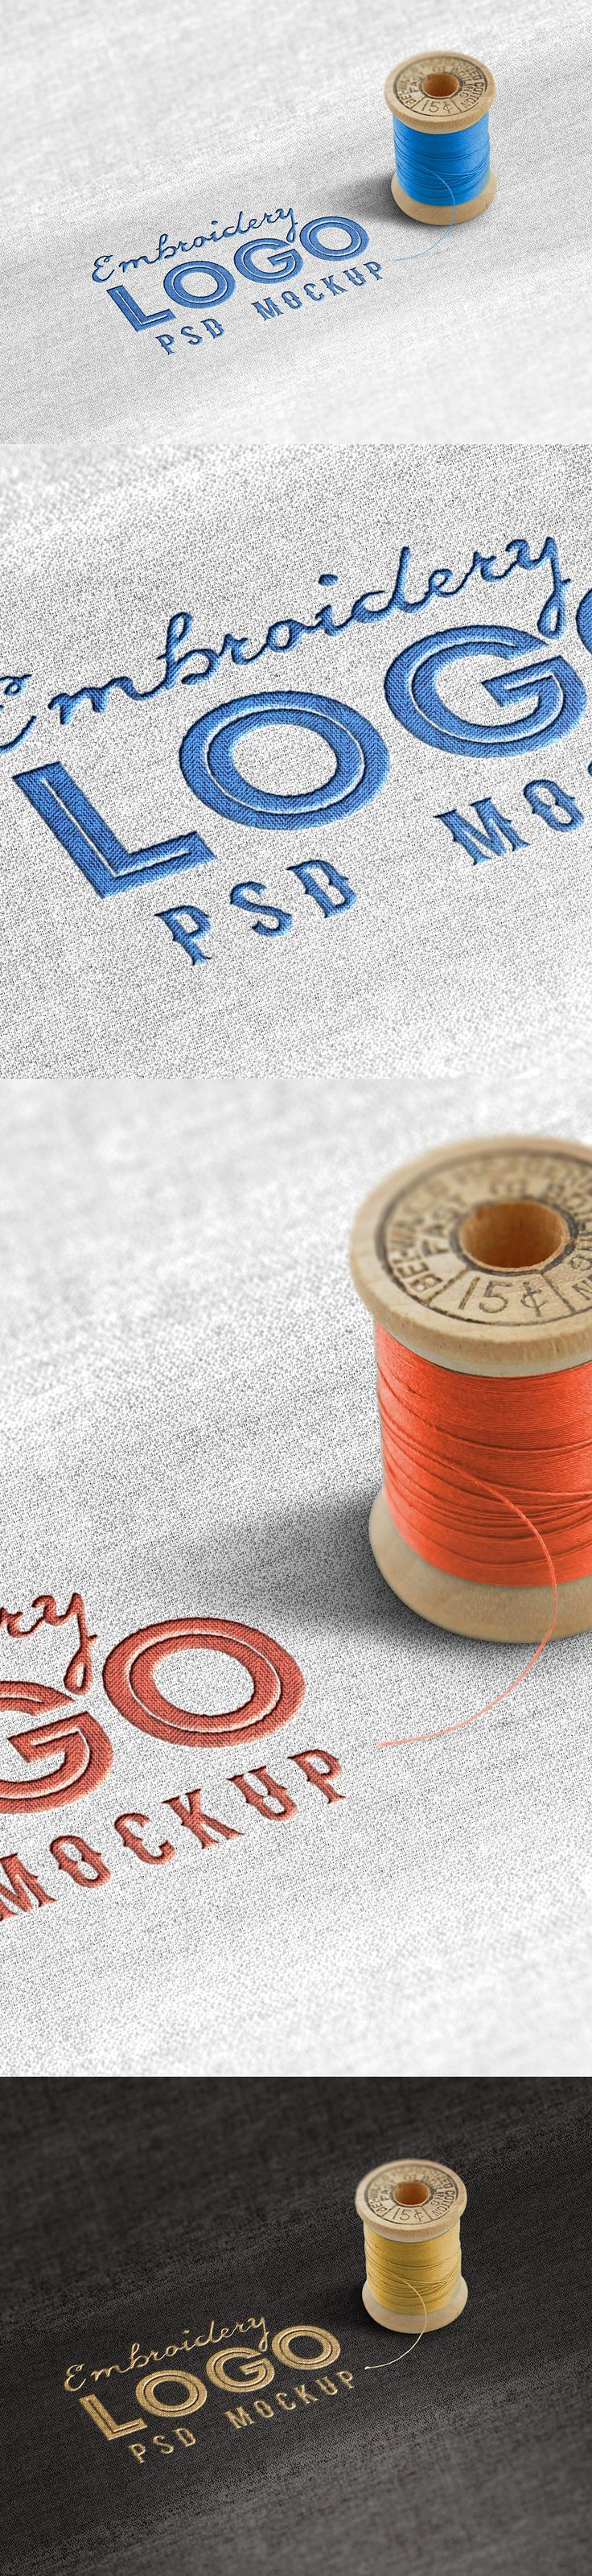 Friends! Let's see what we have for you today! This is a Fabric Embroidered Logo Mockup Template which is an ideal logo design to make your logo like a realistic embroidered logo on a fabric or piece of cloth. You can easily change the background fabric color or the logo and thread colors according to your liking. Feel free to get it and give your design a cool and fun look!